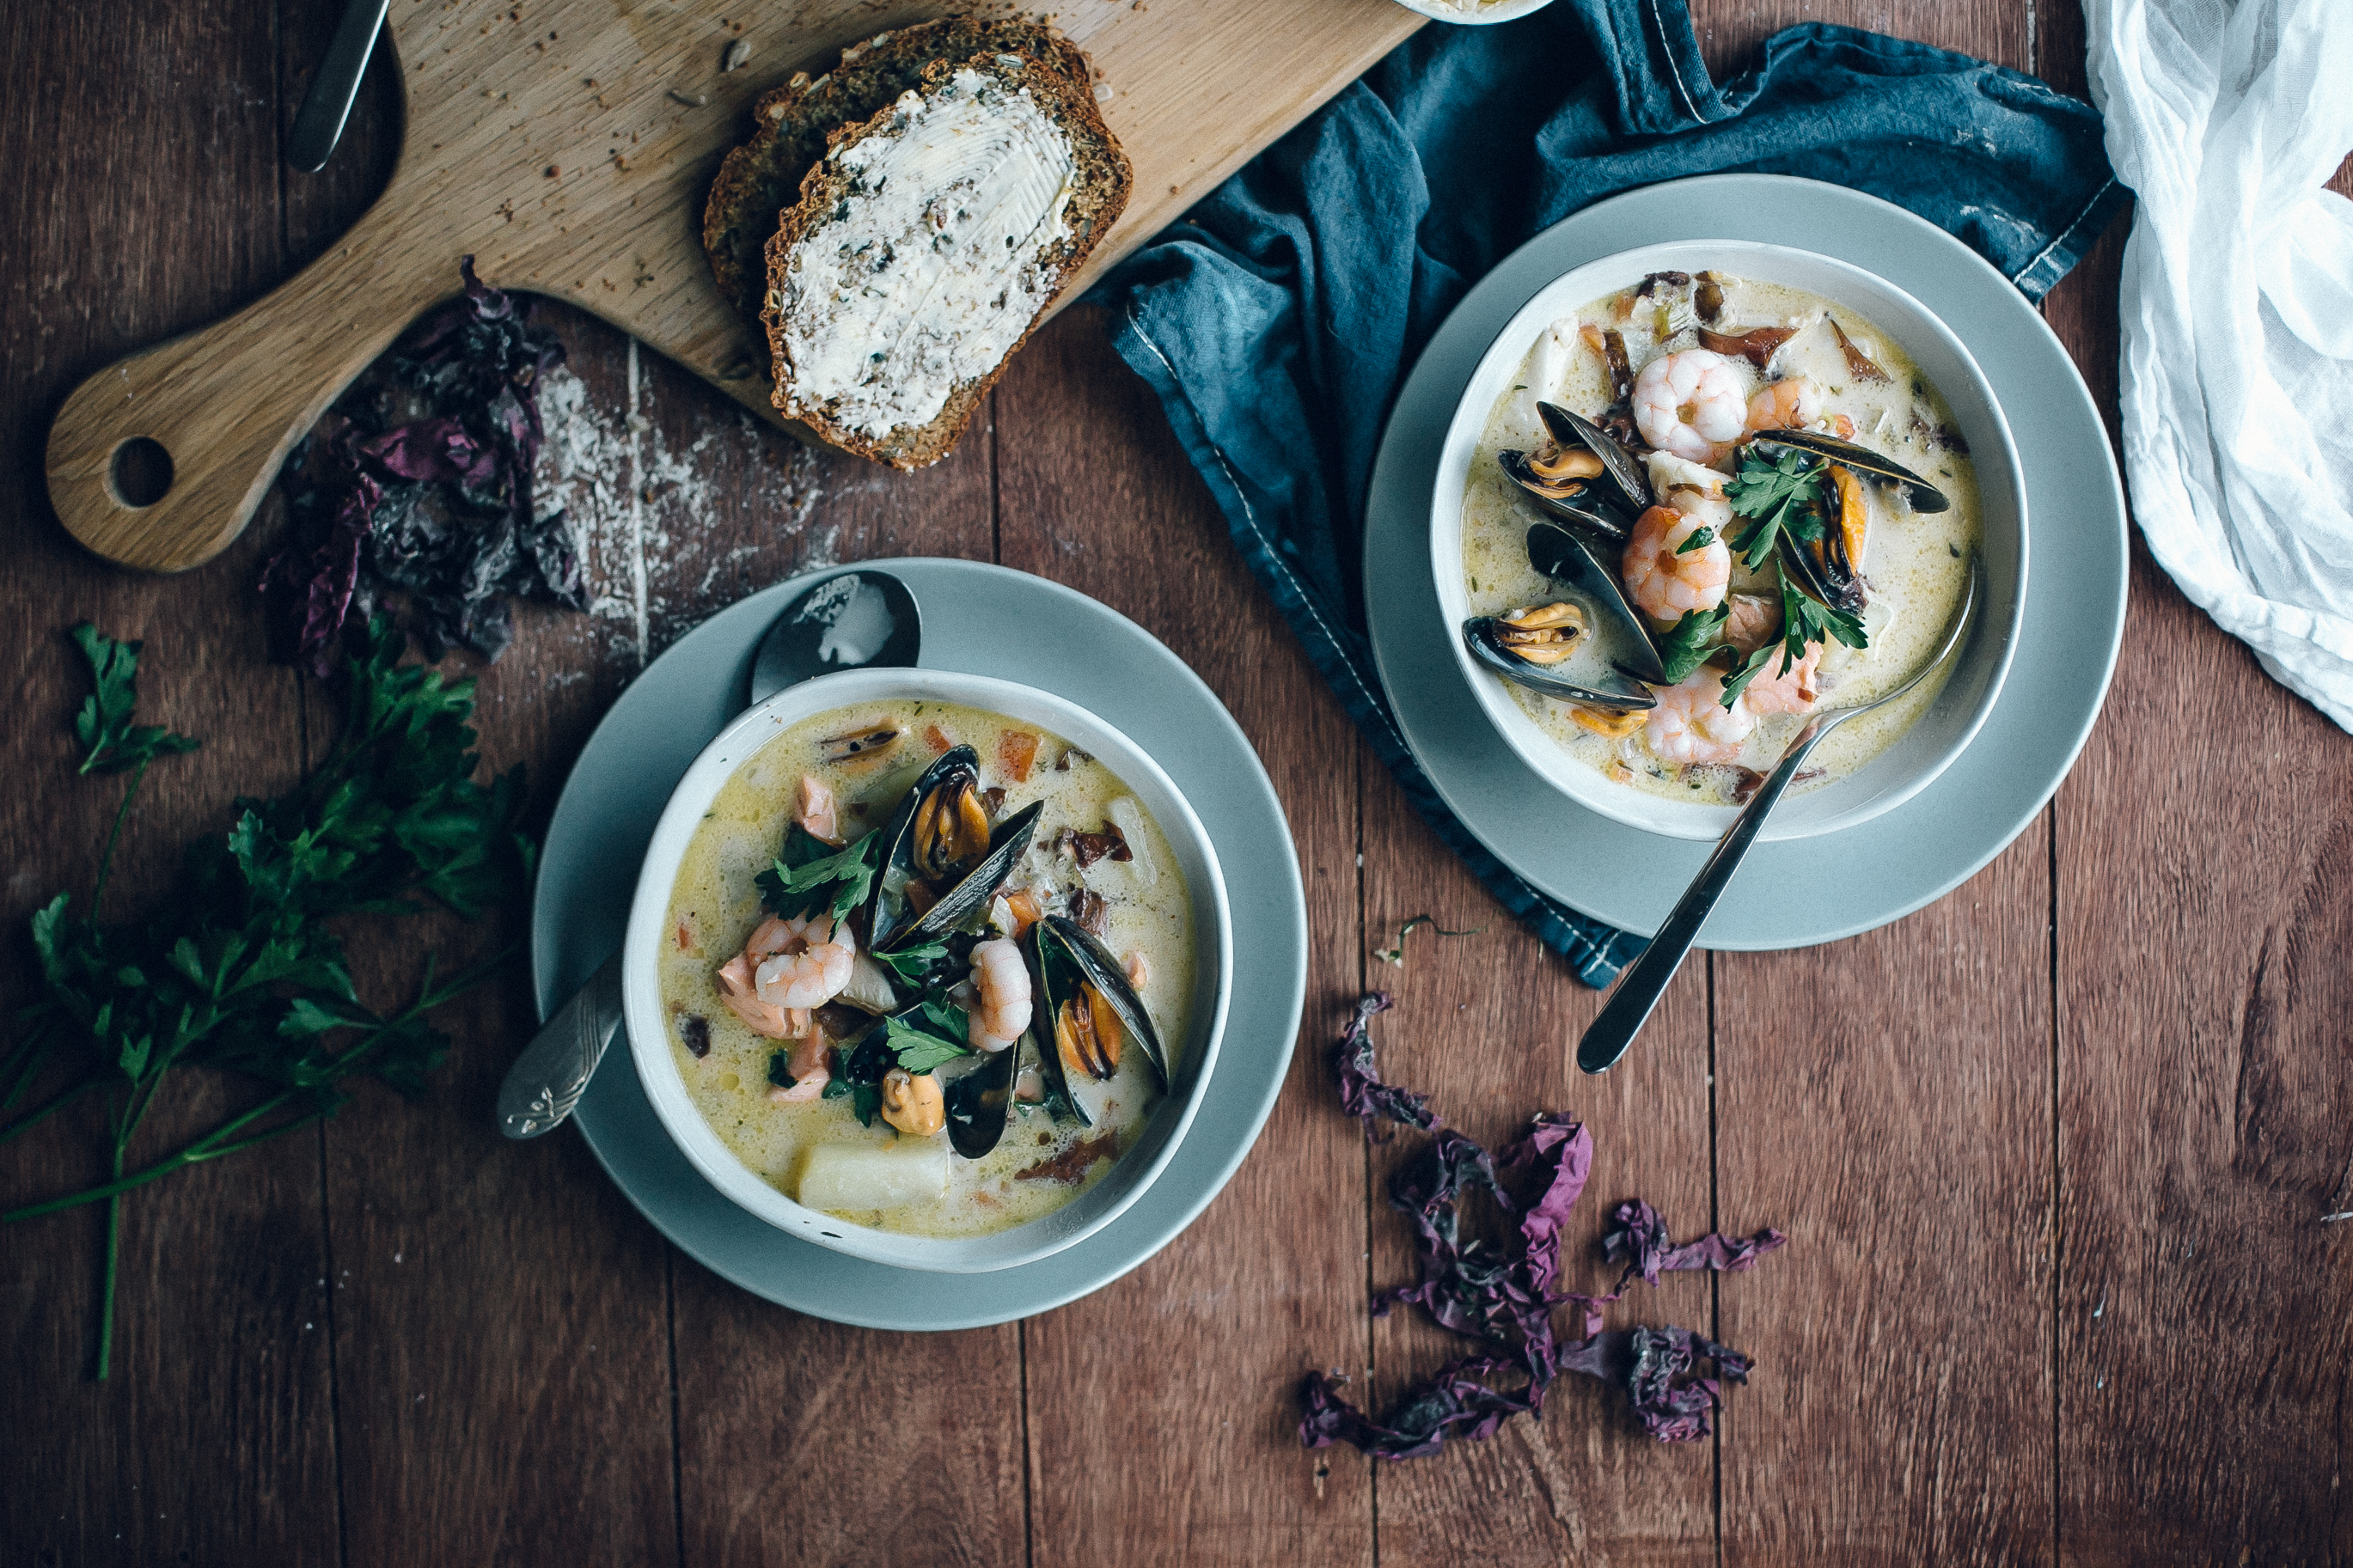 Seafood Chowder With Dillisk & Seed Brown Bread